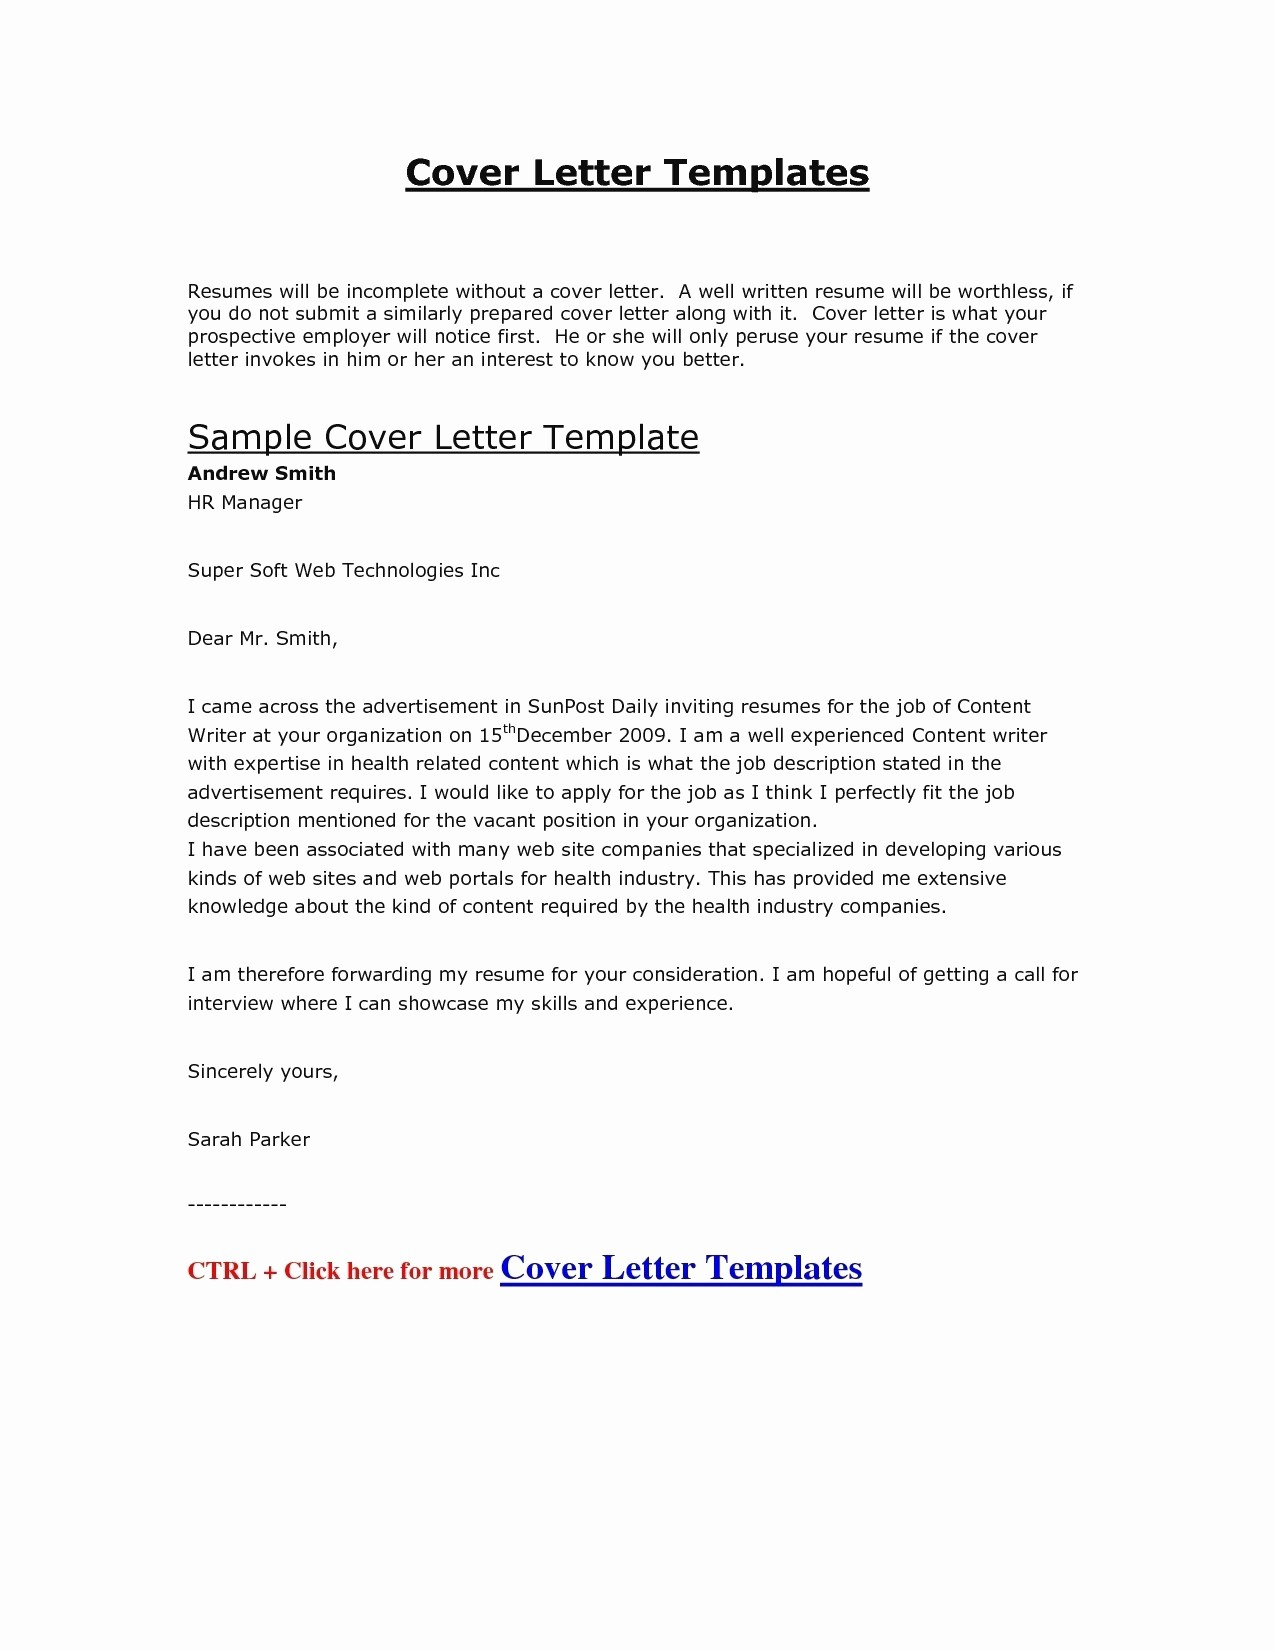 Writing A formal Letter Template - Job Application Letter format Template Copy Cover Letter Template Hr